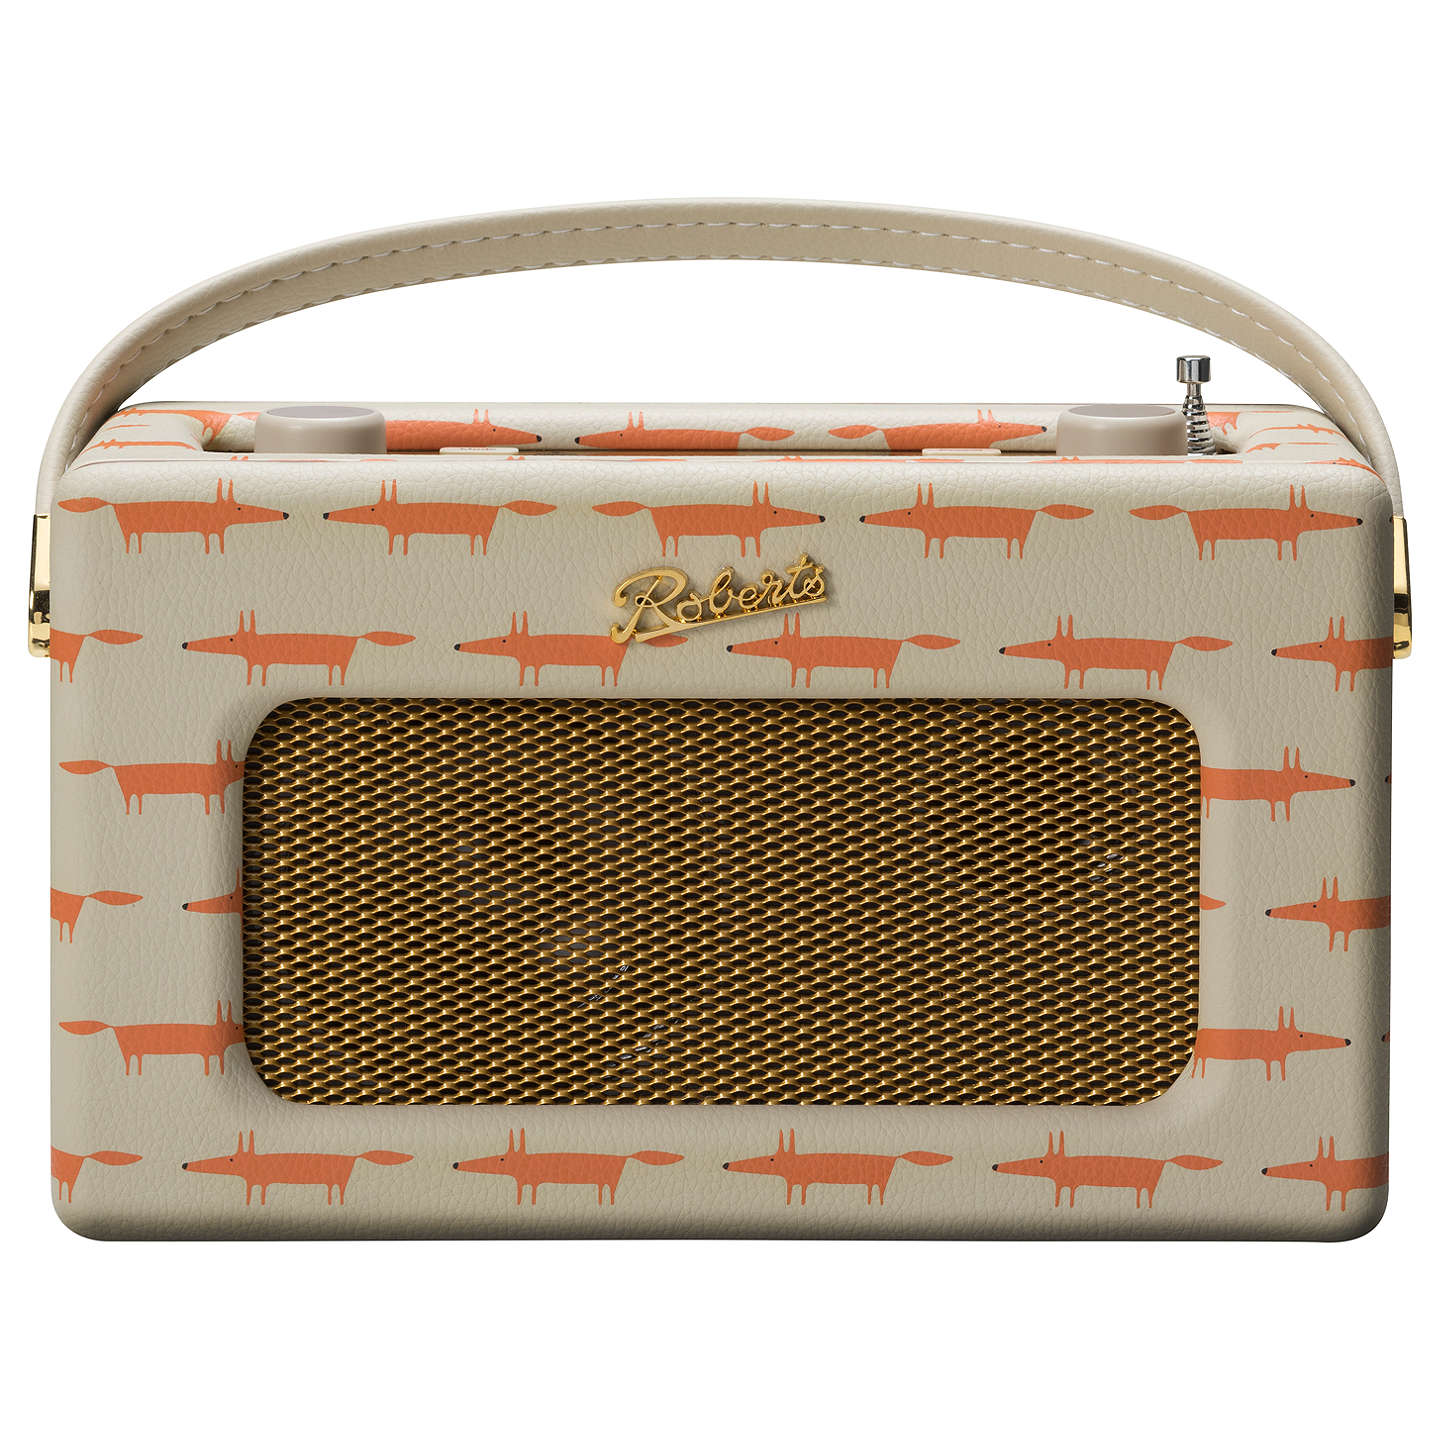 BuyROBERTS Revival RD70 DAB/DAB+/FM Bluetooth Digital Radio with Alarm, Limited Edition Scion Design, Mr Fox Online at johnlewis.com